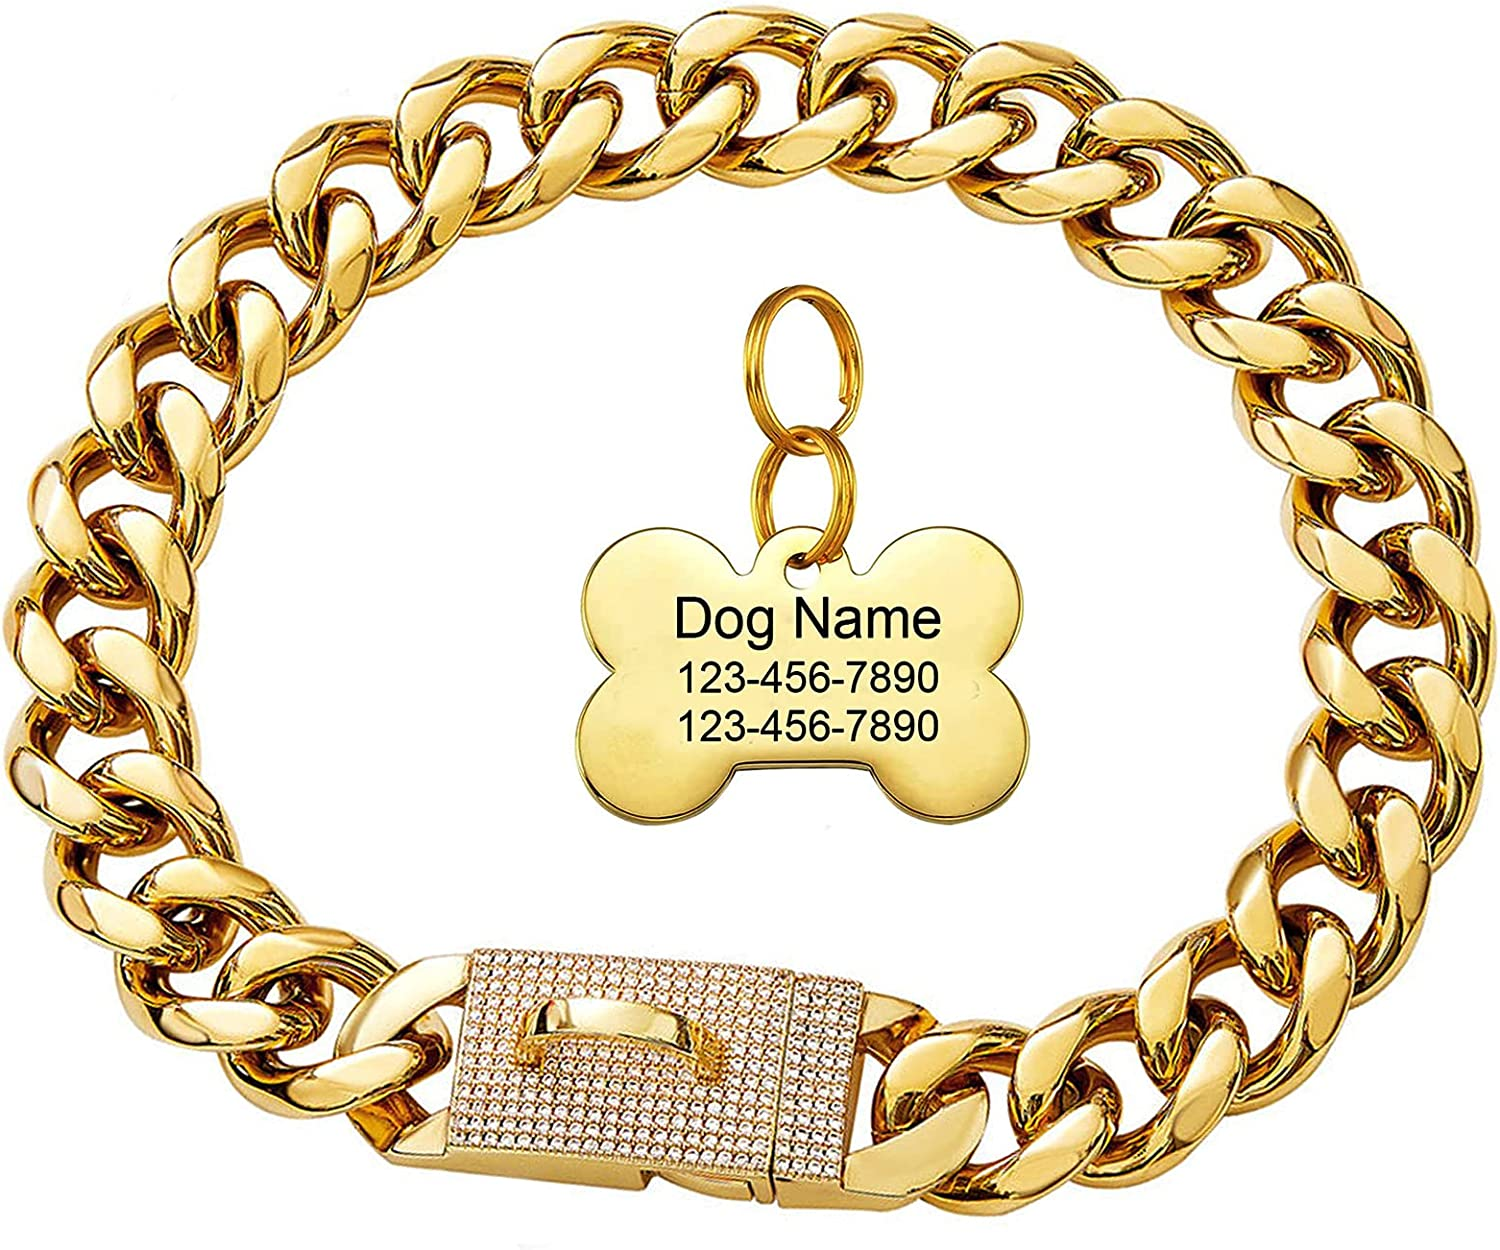 18k Gold Recommended Dog Chain Collar with Special Campaign Strong S Lock Diamond